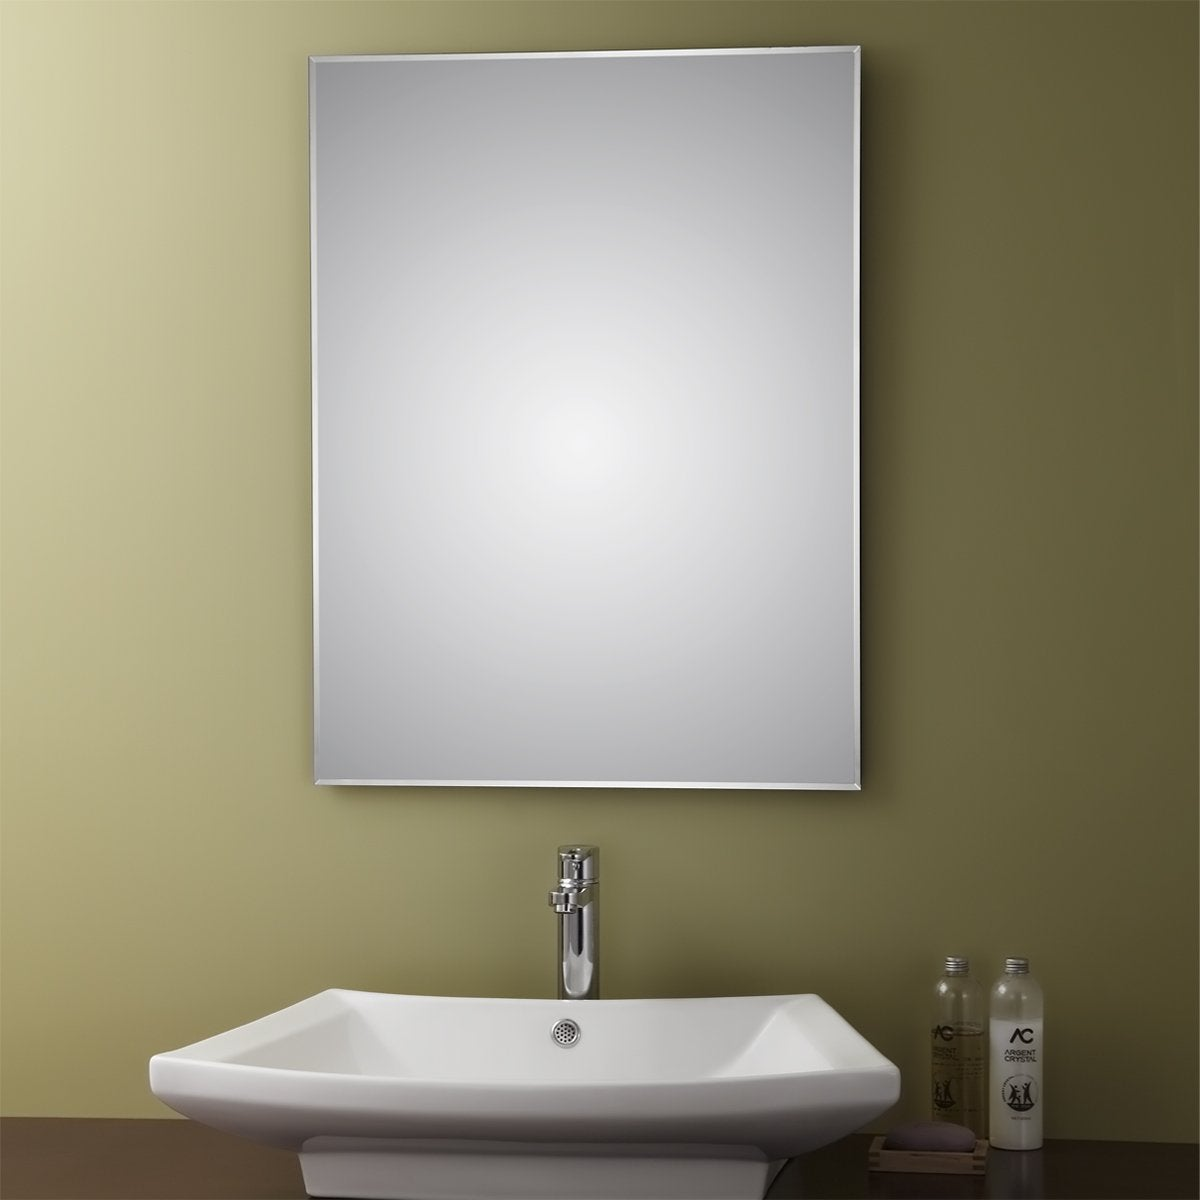 Bathroom sink and mirror - Belvedere 32 X 24 Inch Frameless Wall Mirror